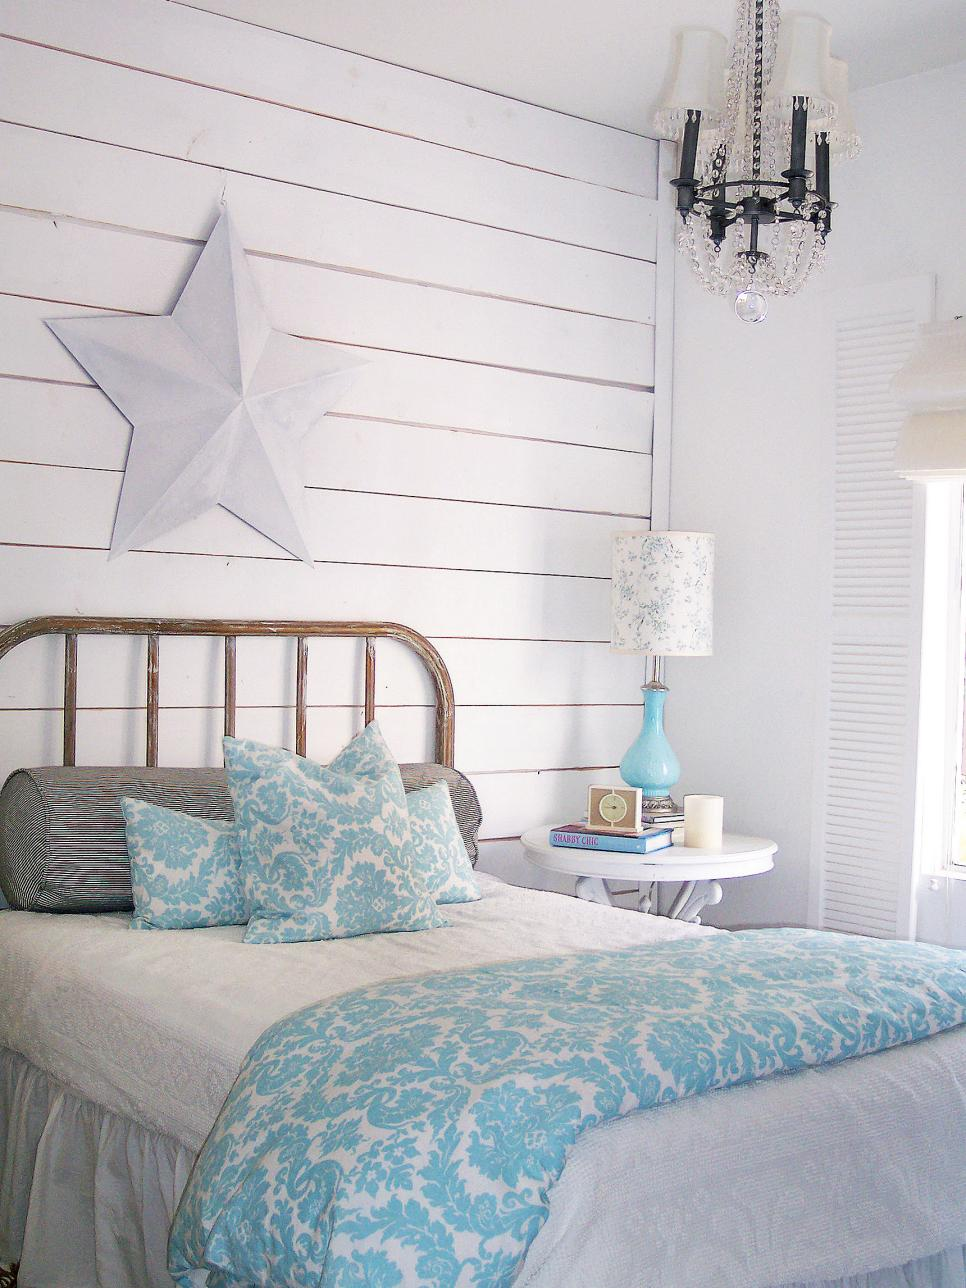 Add shabby chic touches to your bedroom design hgtv for Chic bedroom ideas women